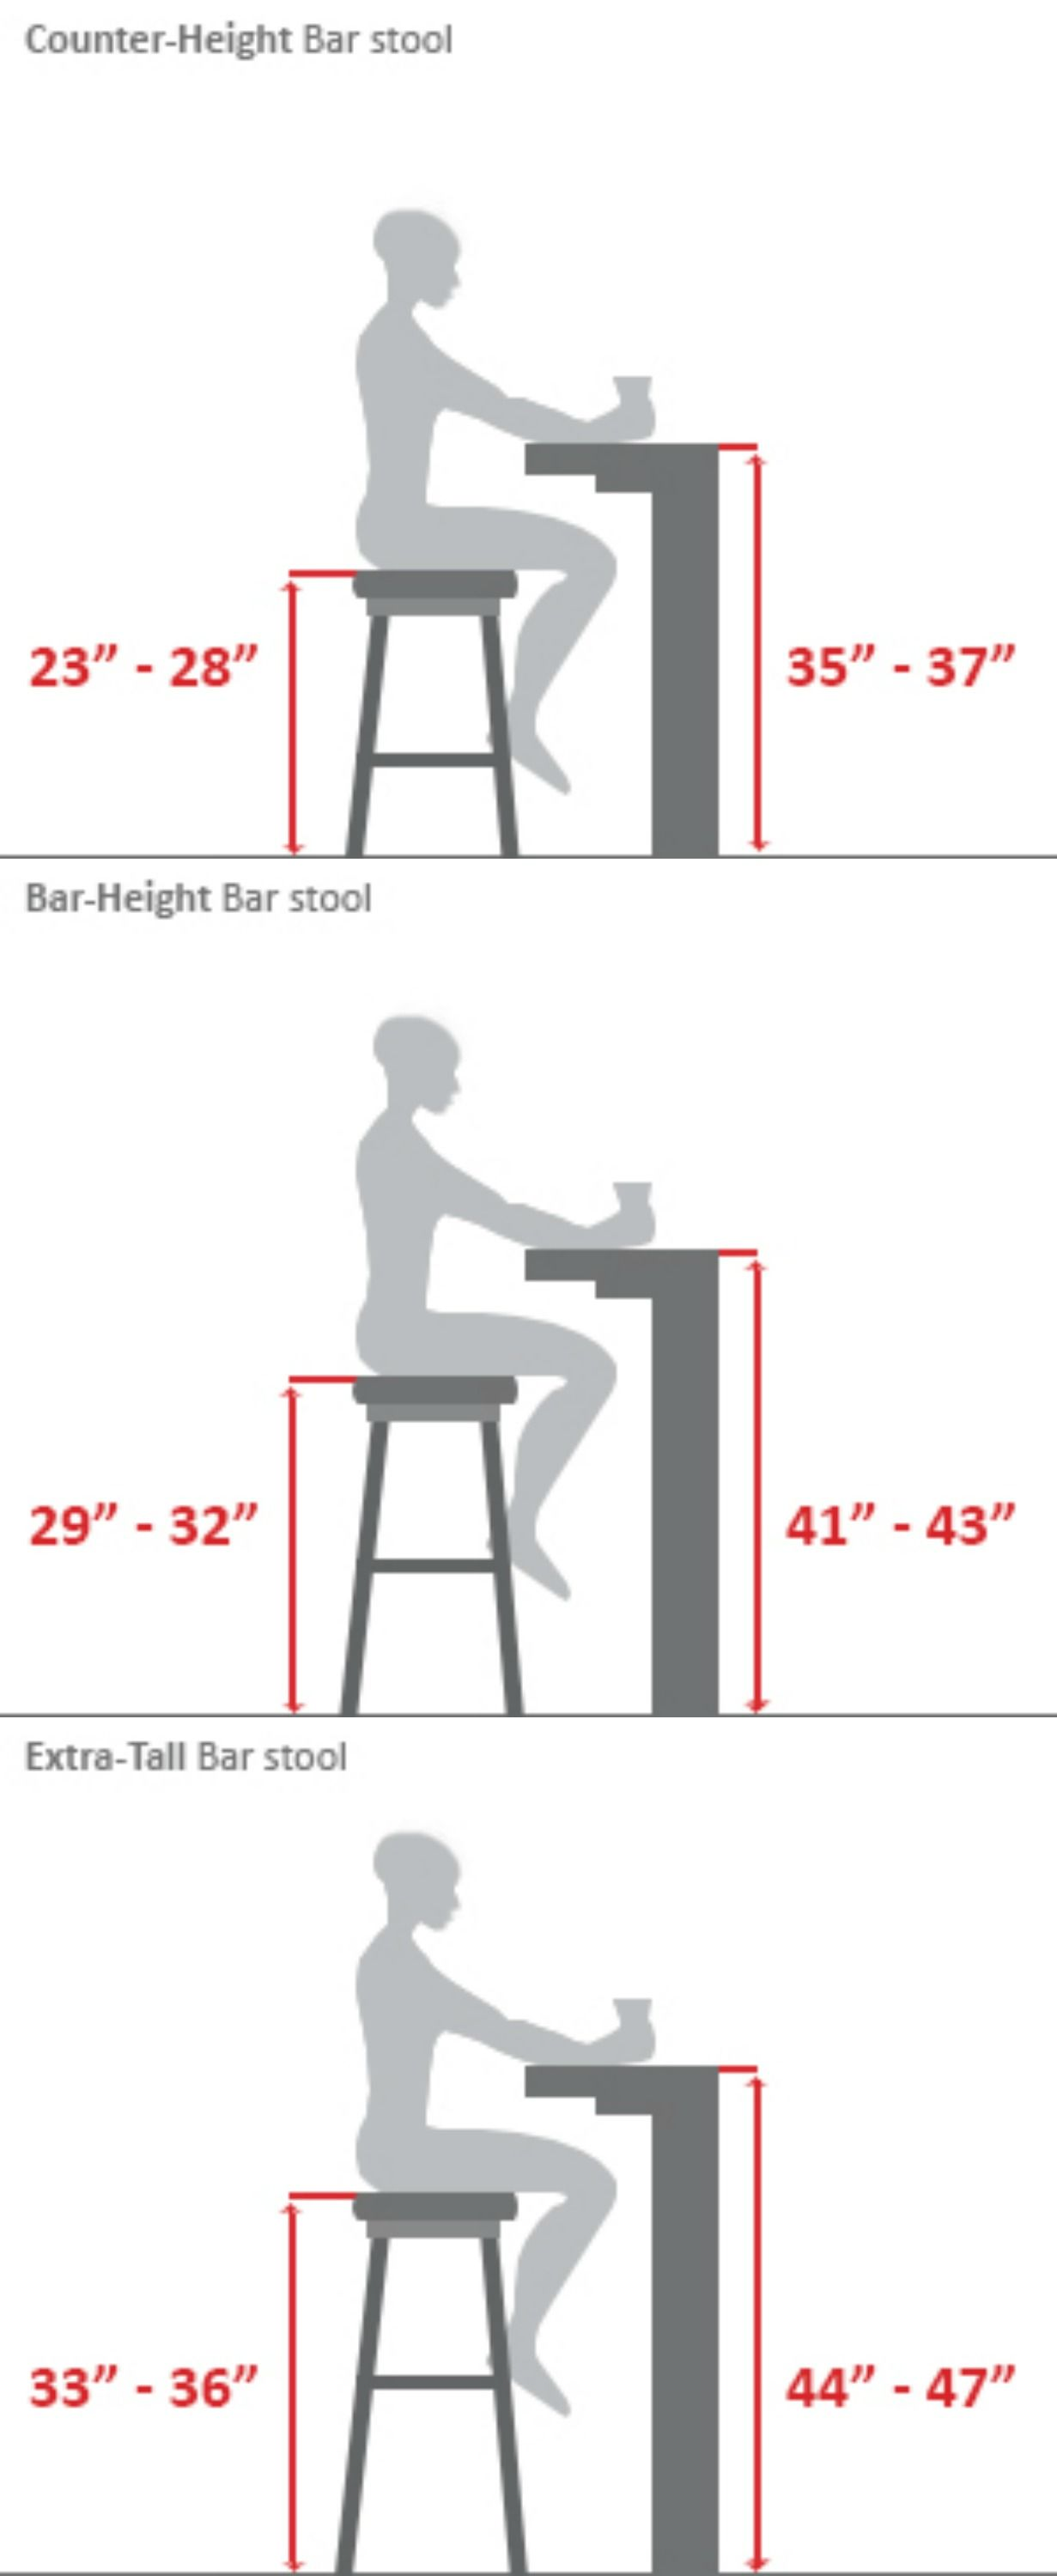 Bar Stool Buying GuideOr The Builders Guide When Building - Commercial bar dimensions standard